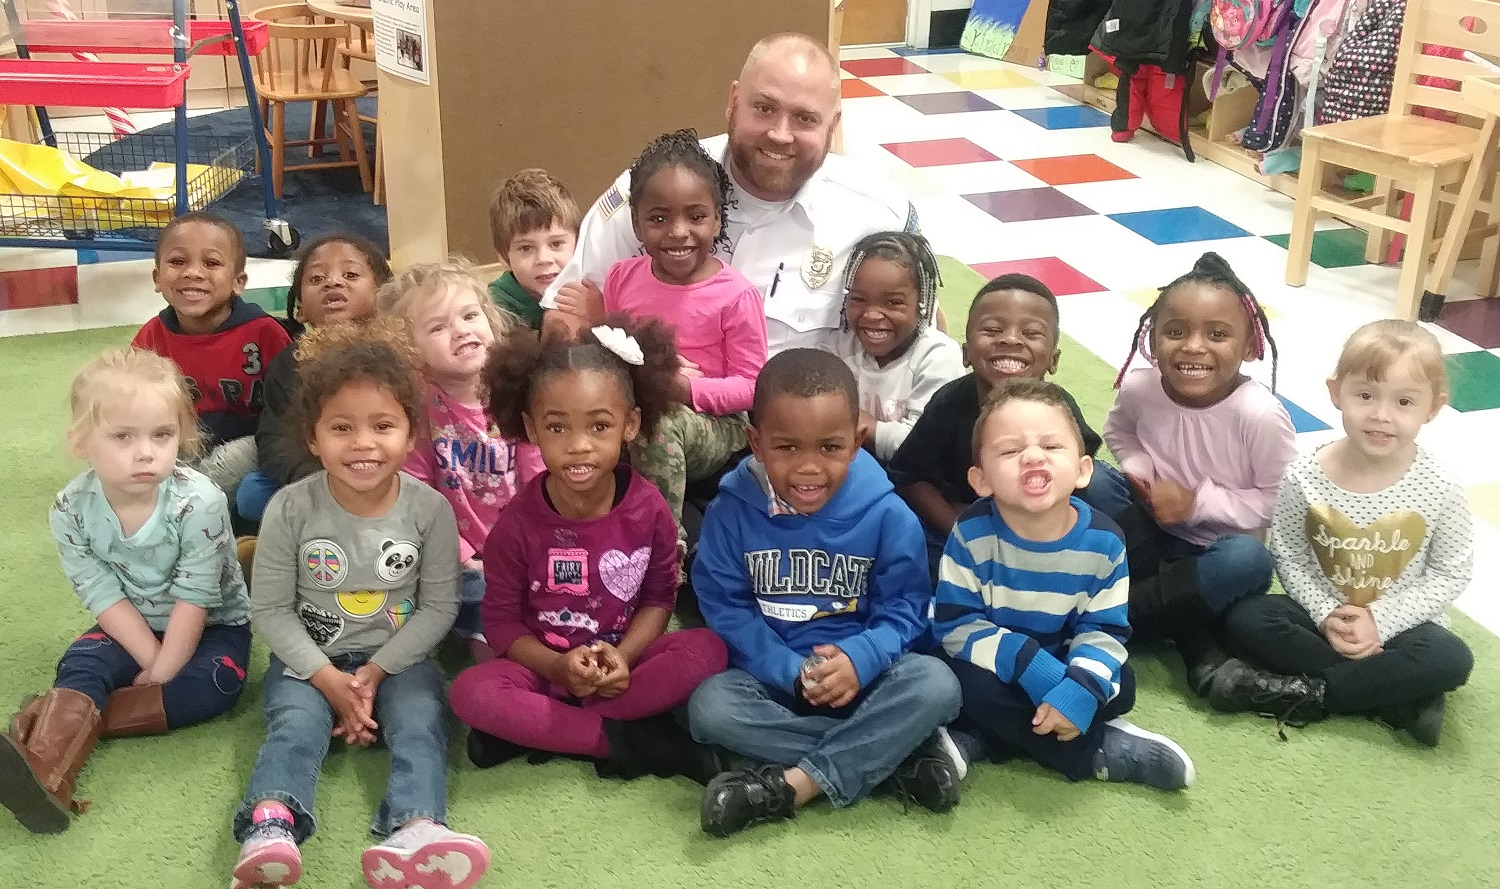 Corrections officer sitting on the floor with a dozen preschoolers